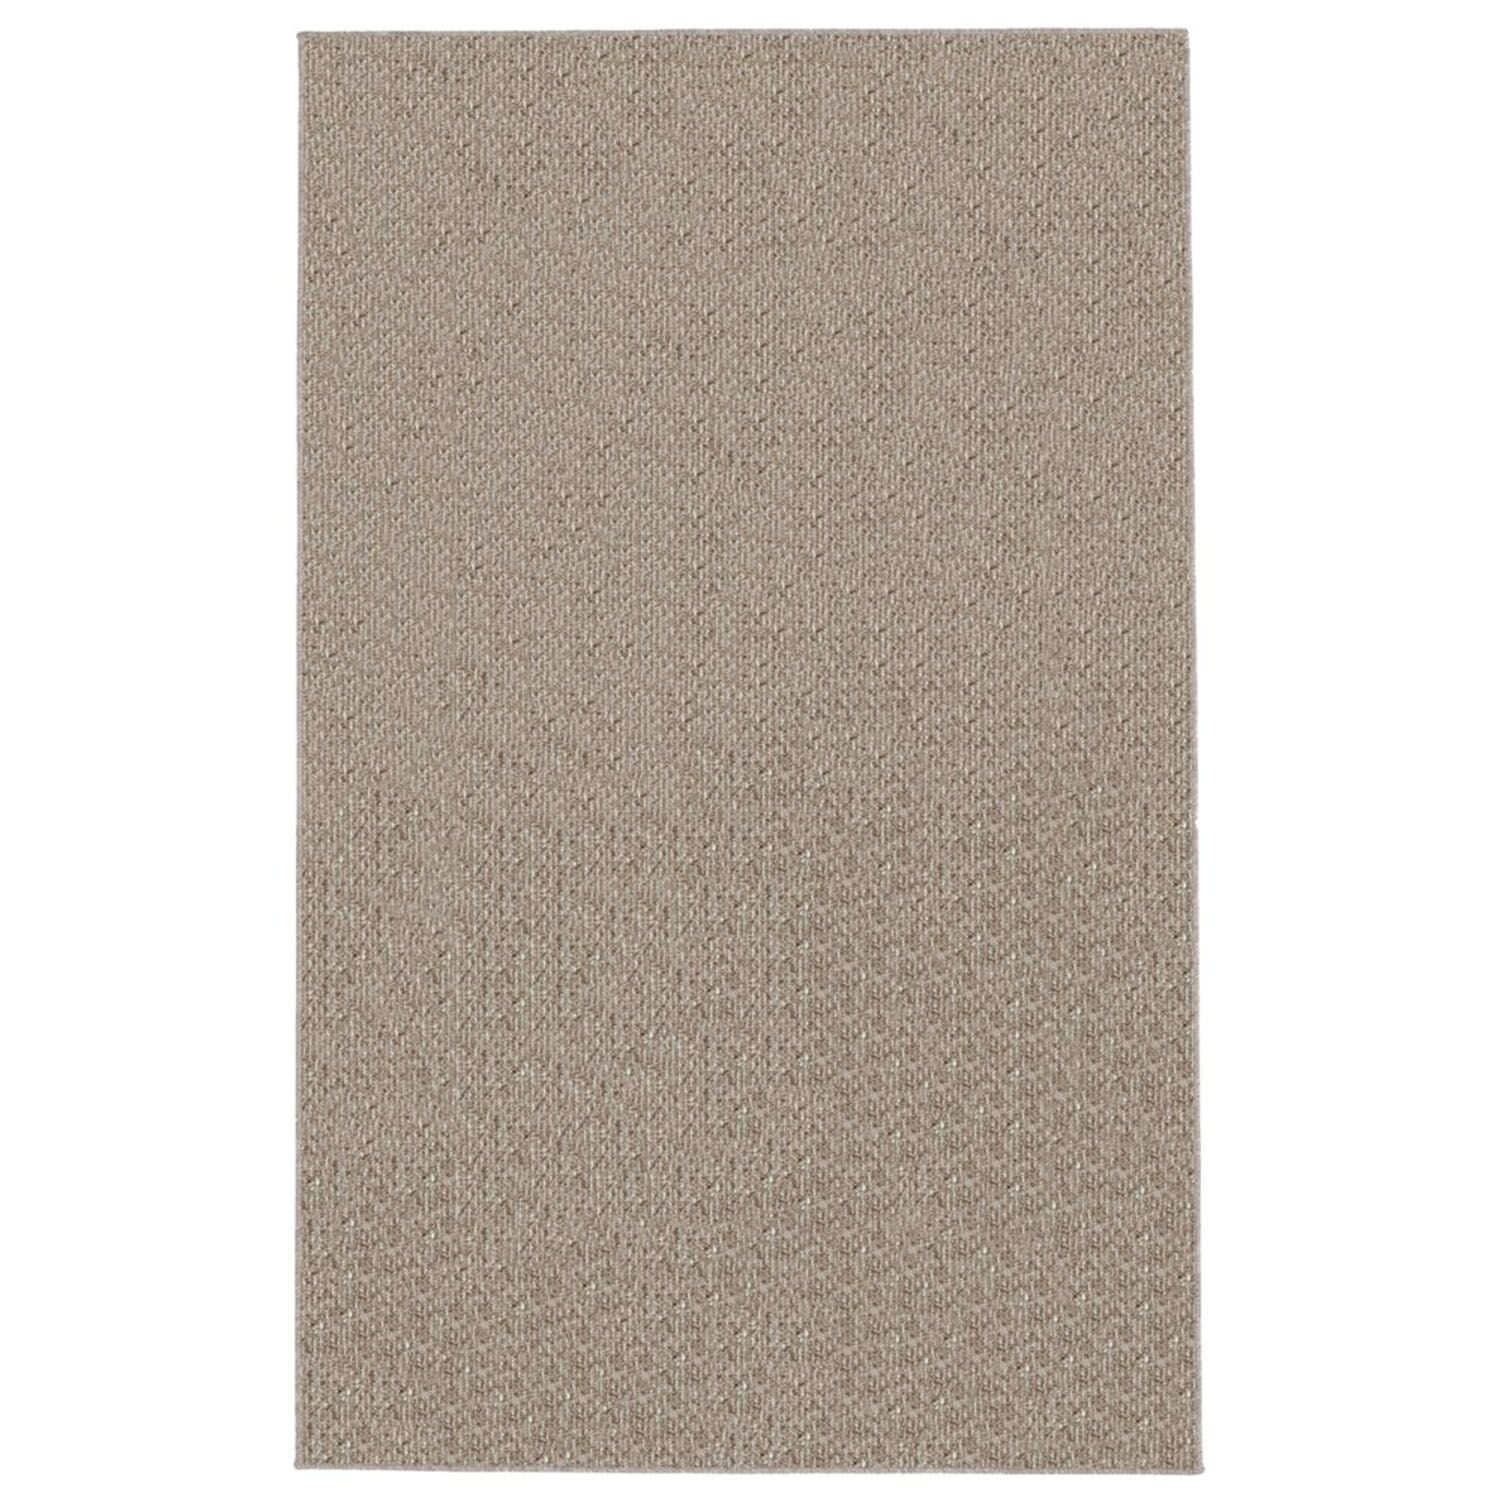 Cannon Brown Area Rug Rug Size: Runner 2'6